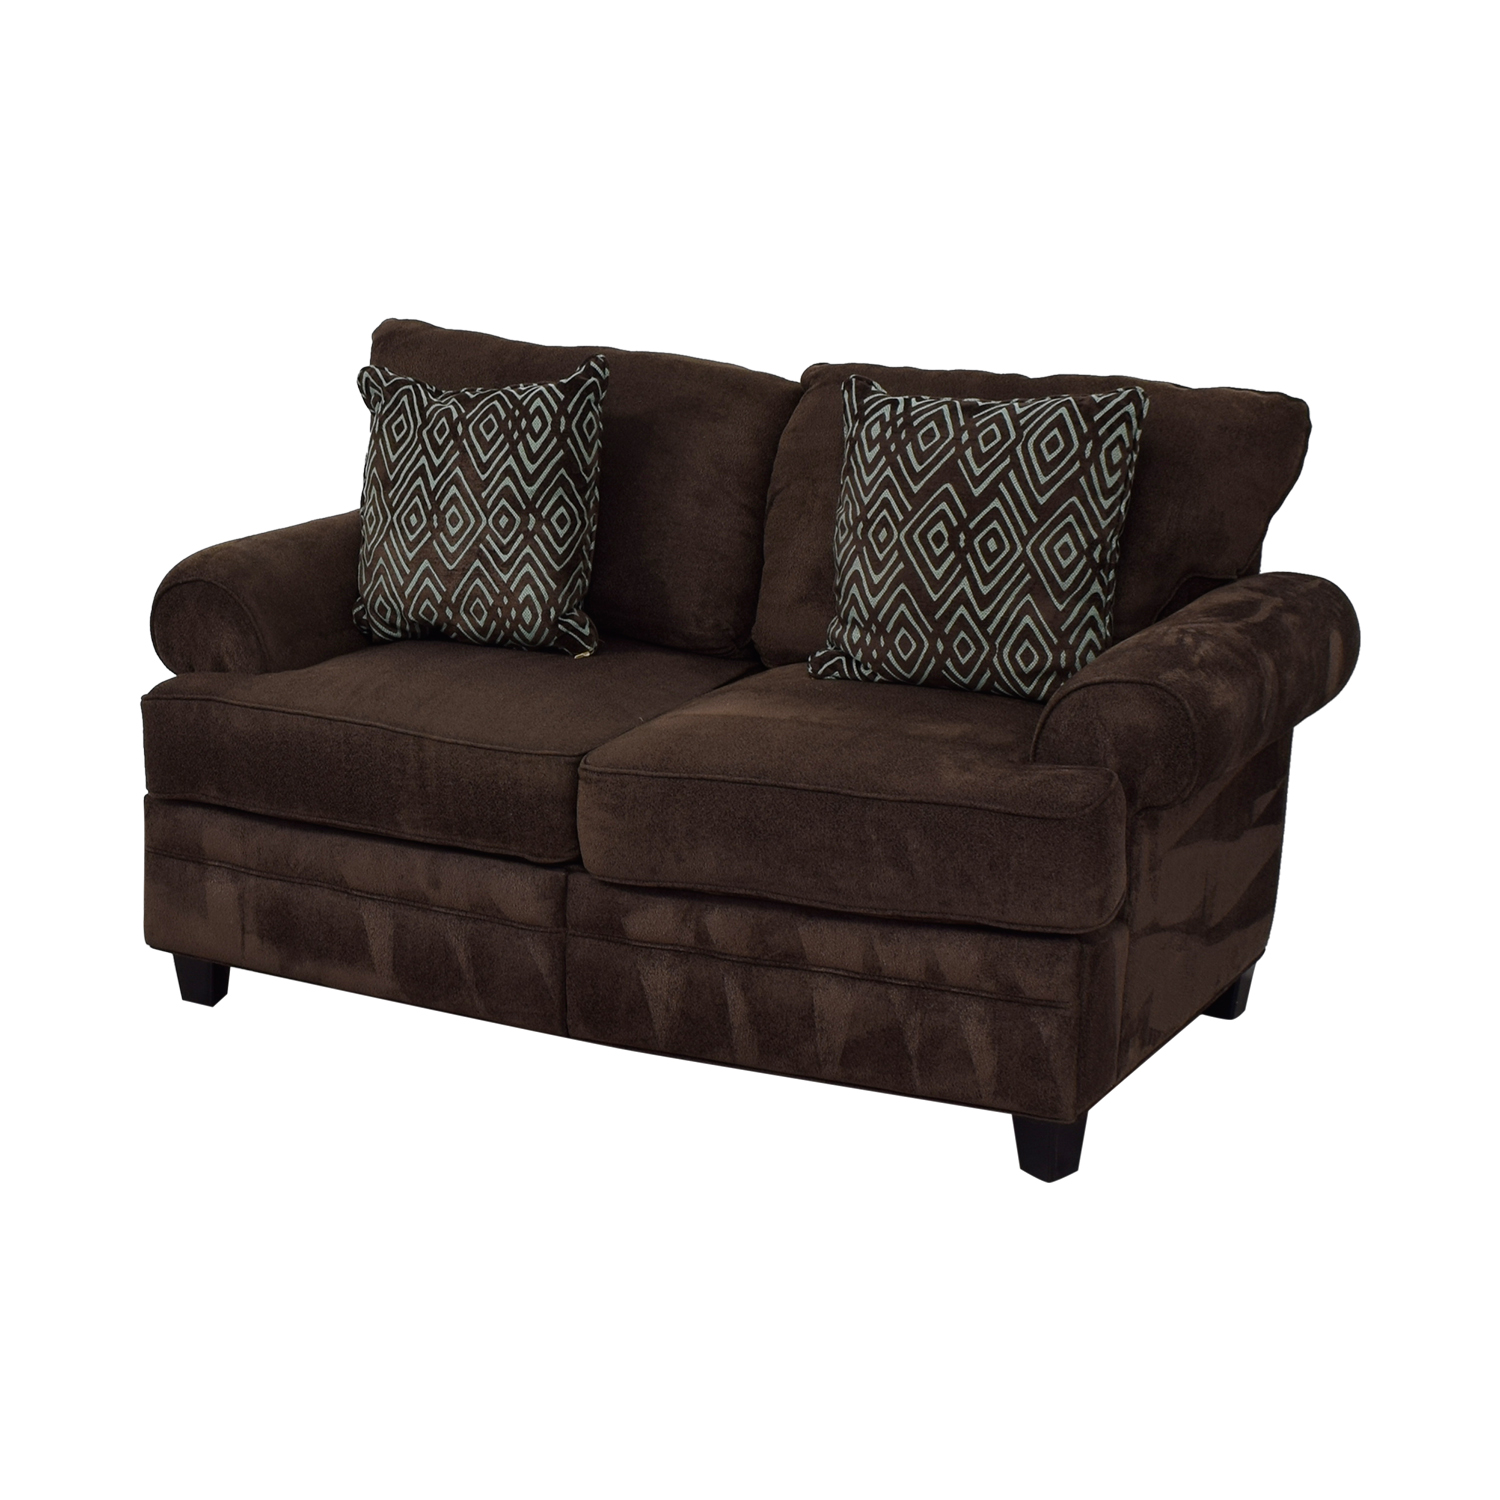 buy Bob's Furniture Brown Two-Cushion Love Seat Bob's Furniture